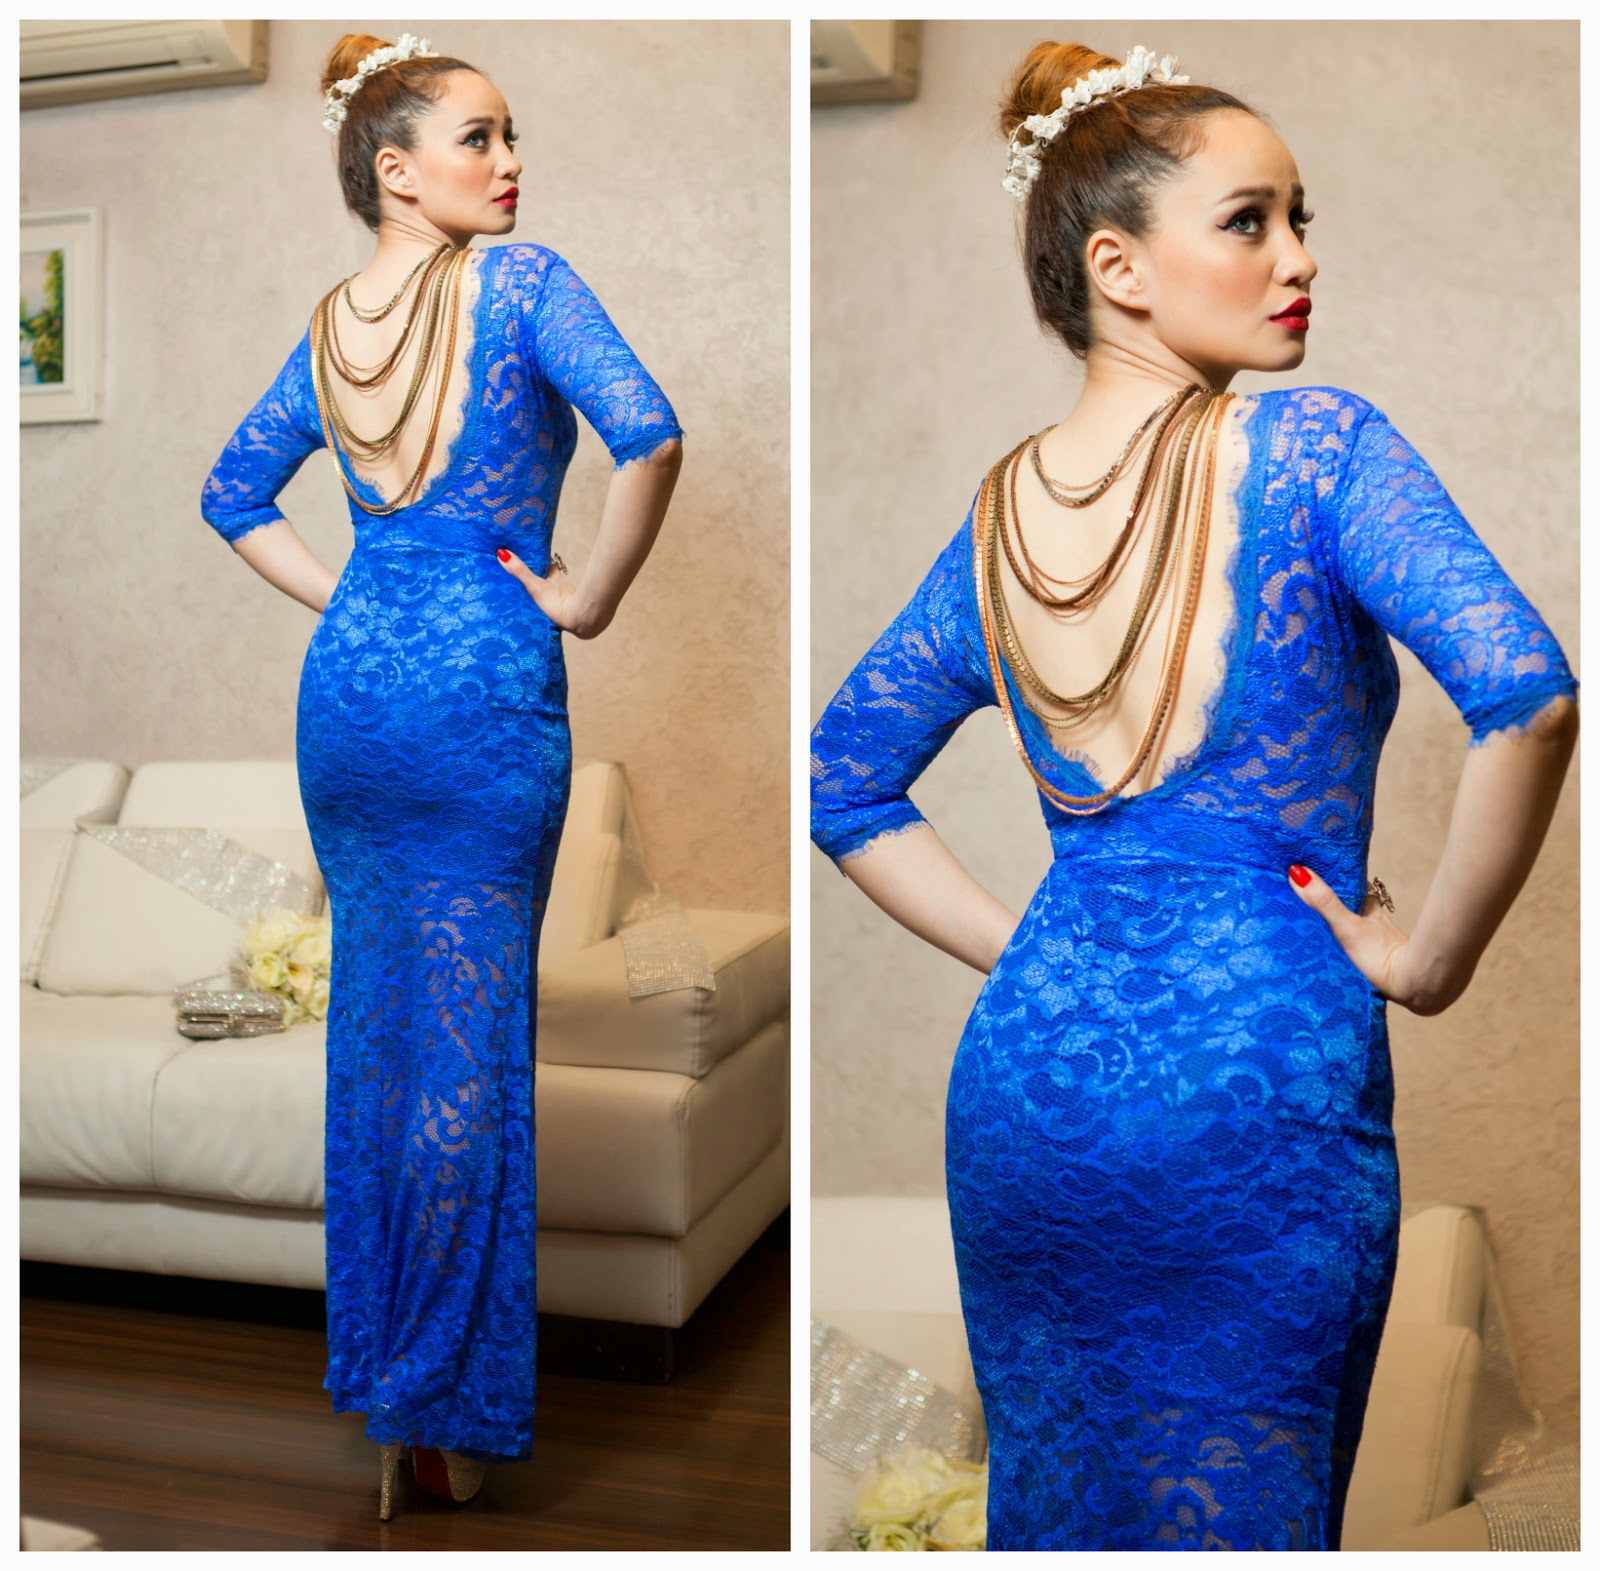 Sheinside Blue Lace Dress with a love V Back with a back-chain